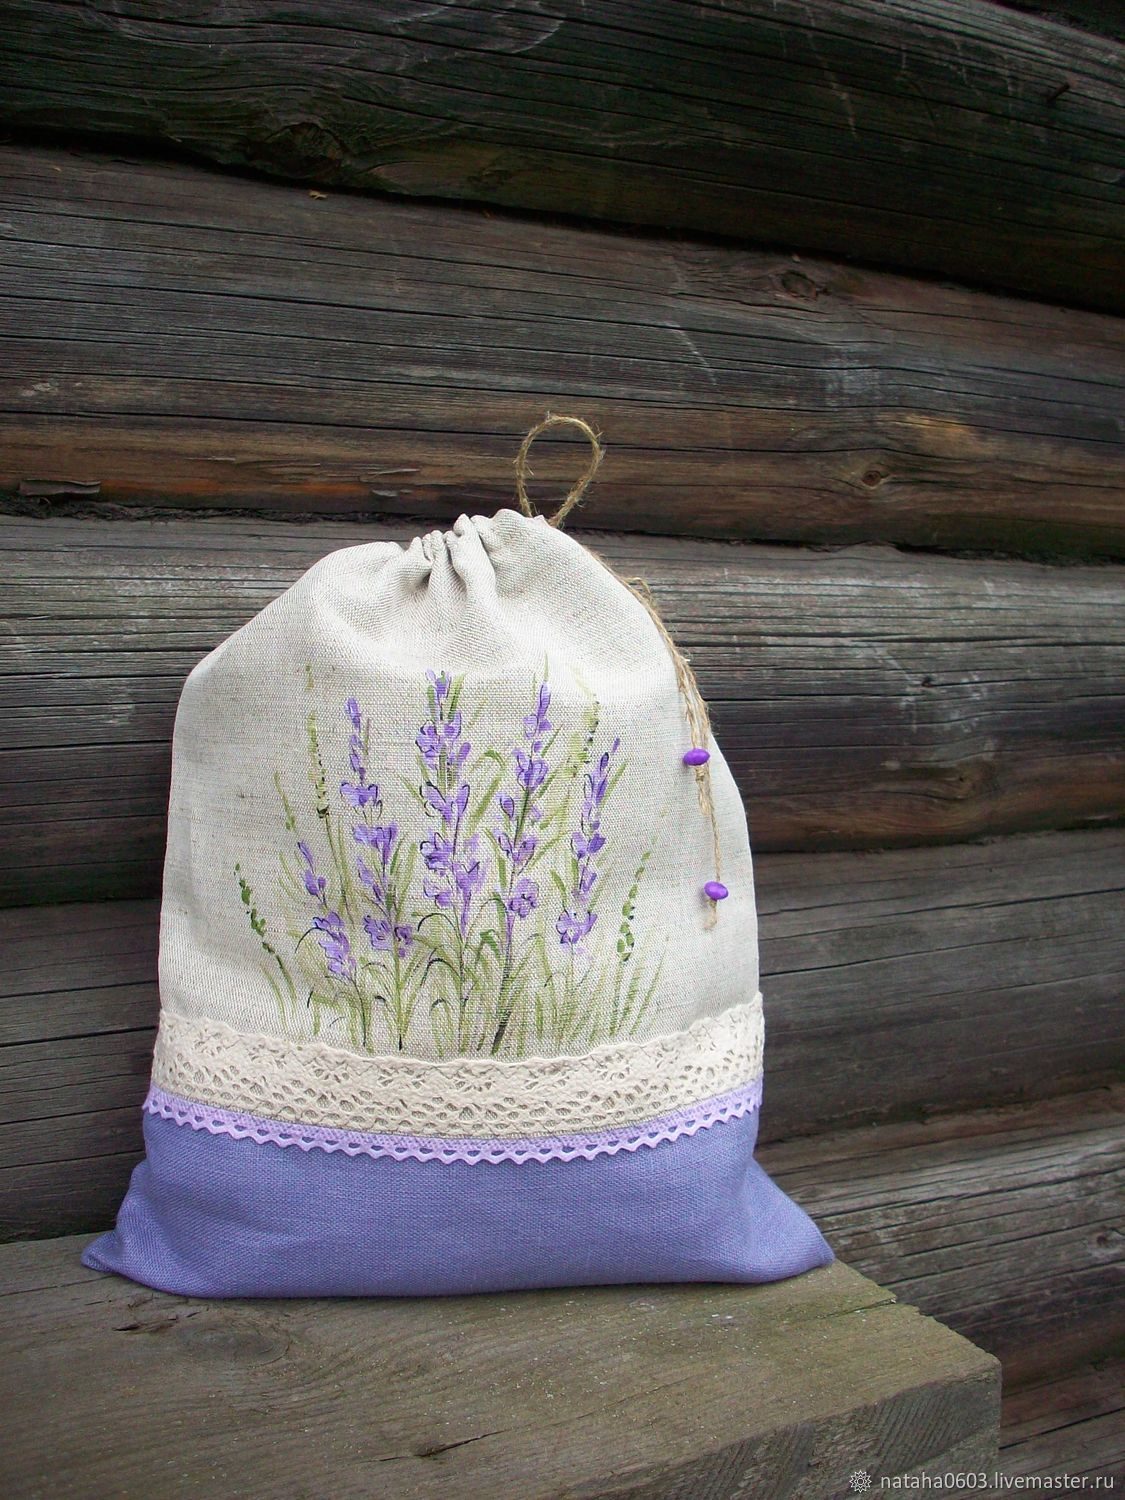 Linen bag for bread with Lavender painting, Bags, Shuya, Фото №1